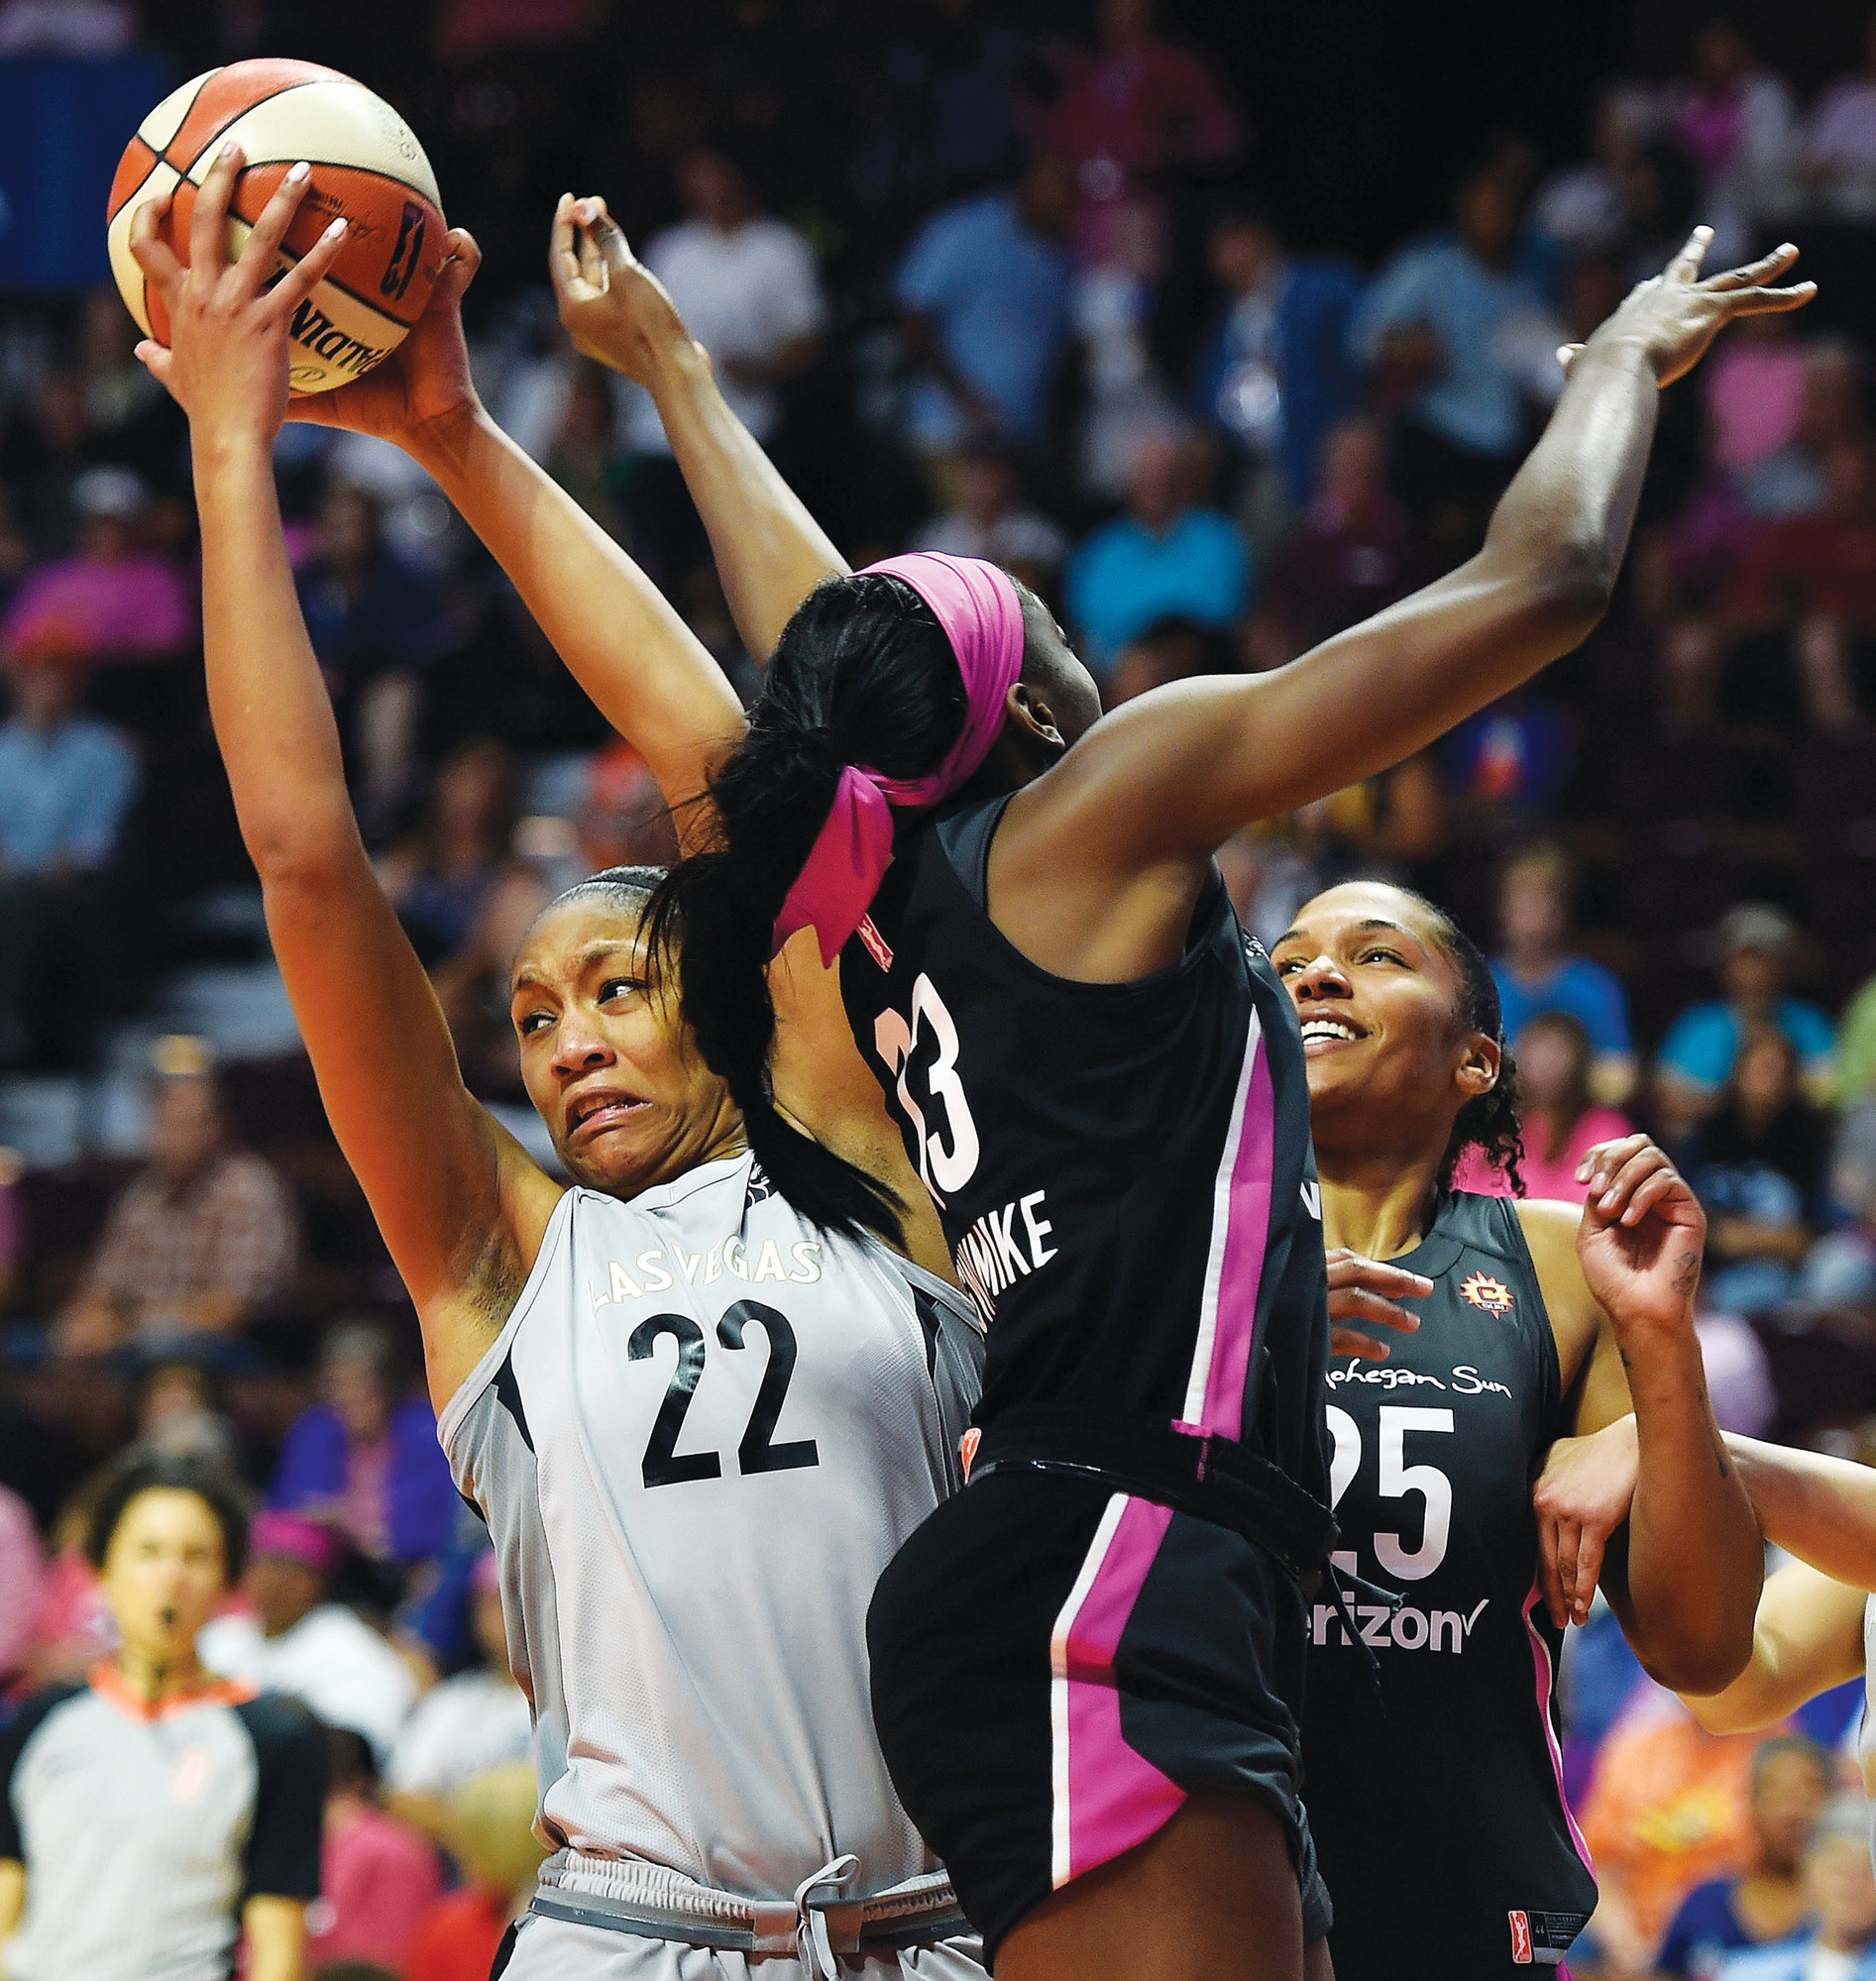 Former South Carolina standout and Las Vegas forward A'ja Wilson (22) will try to build on her WNBA Rookie of the Year season when the WNBA begins play on Friday.